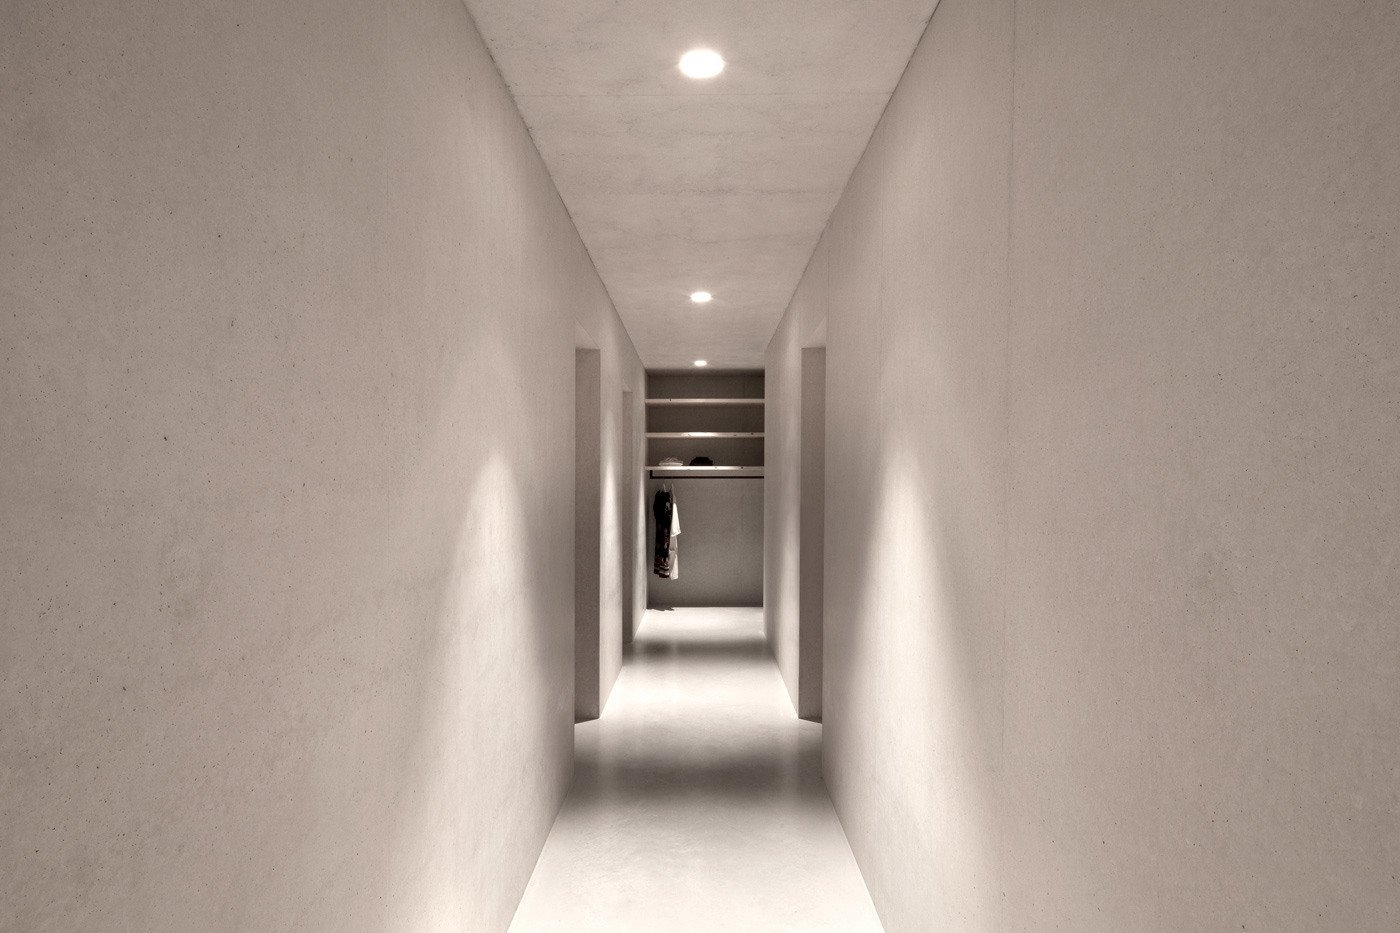 Hallway and Concrete Floor The minimal interior lends a modern feel to the chalet.  La Pedevilla